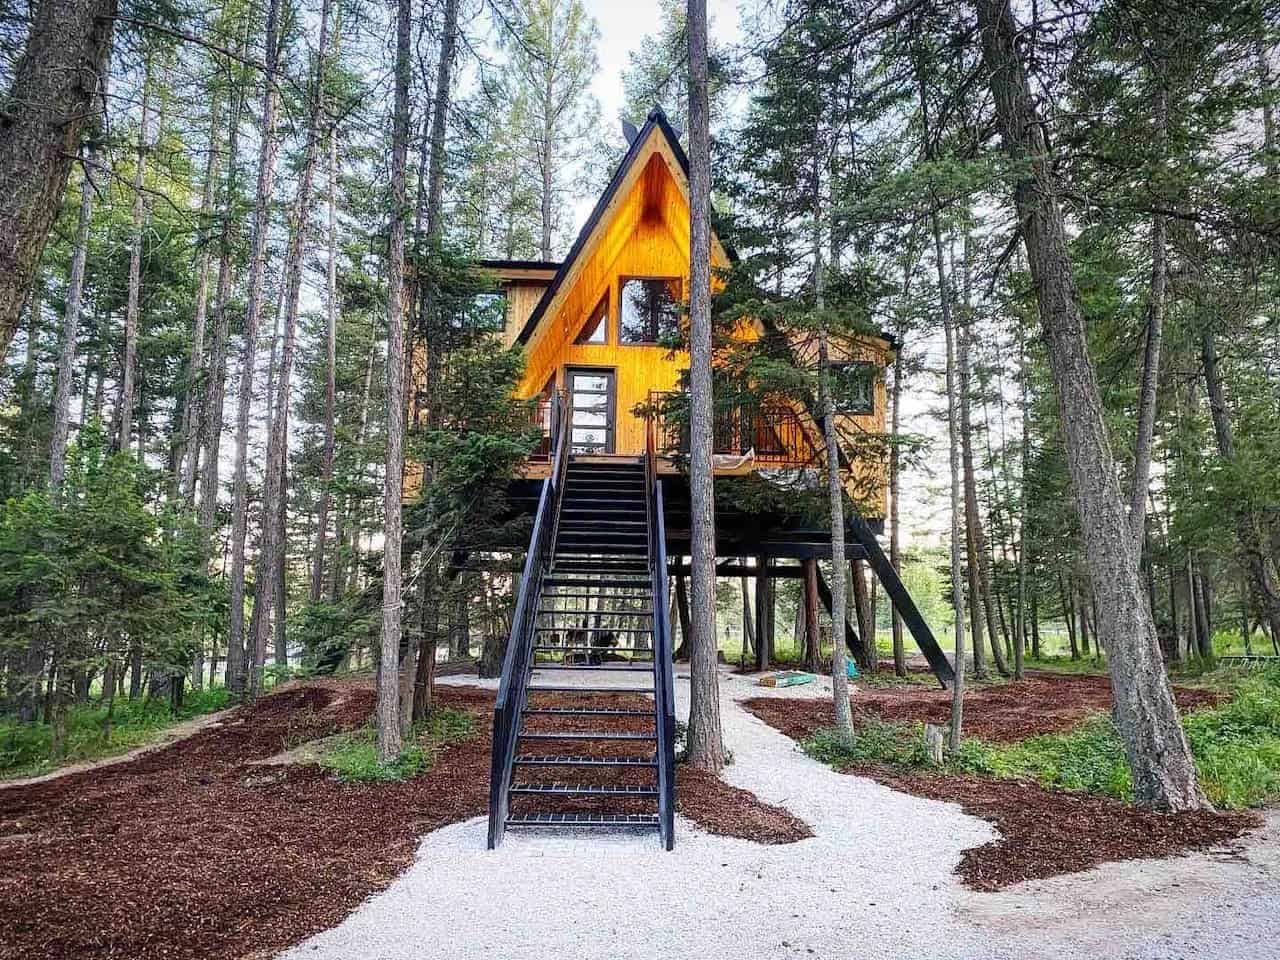 Pacific Northwest Cabins - Raven's Nest Montana Treehouse